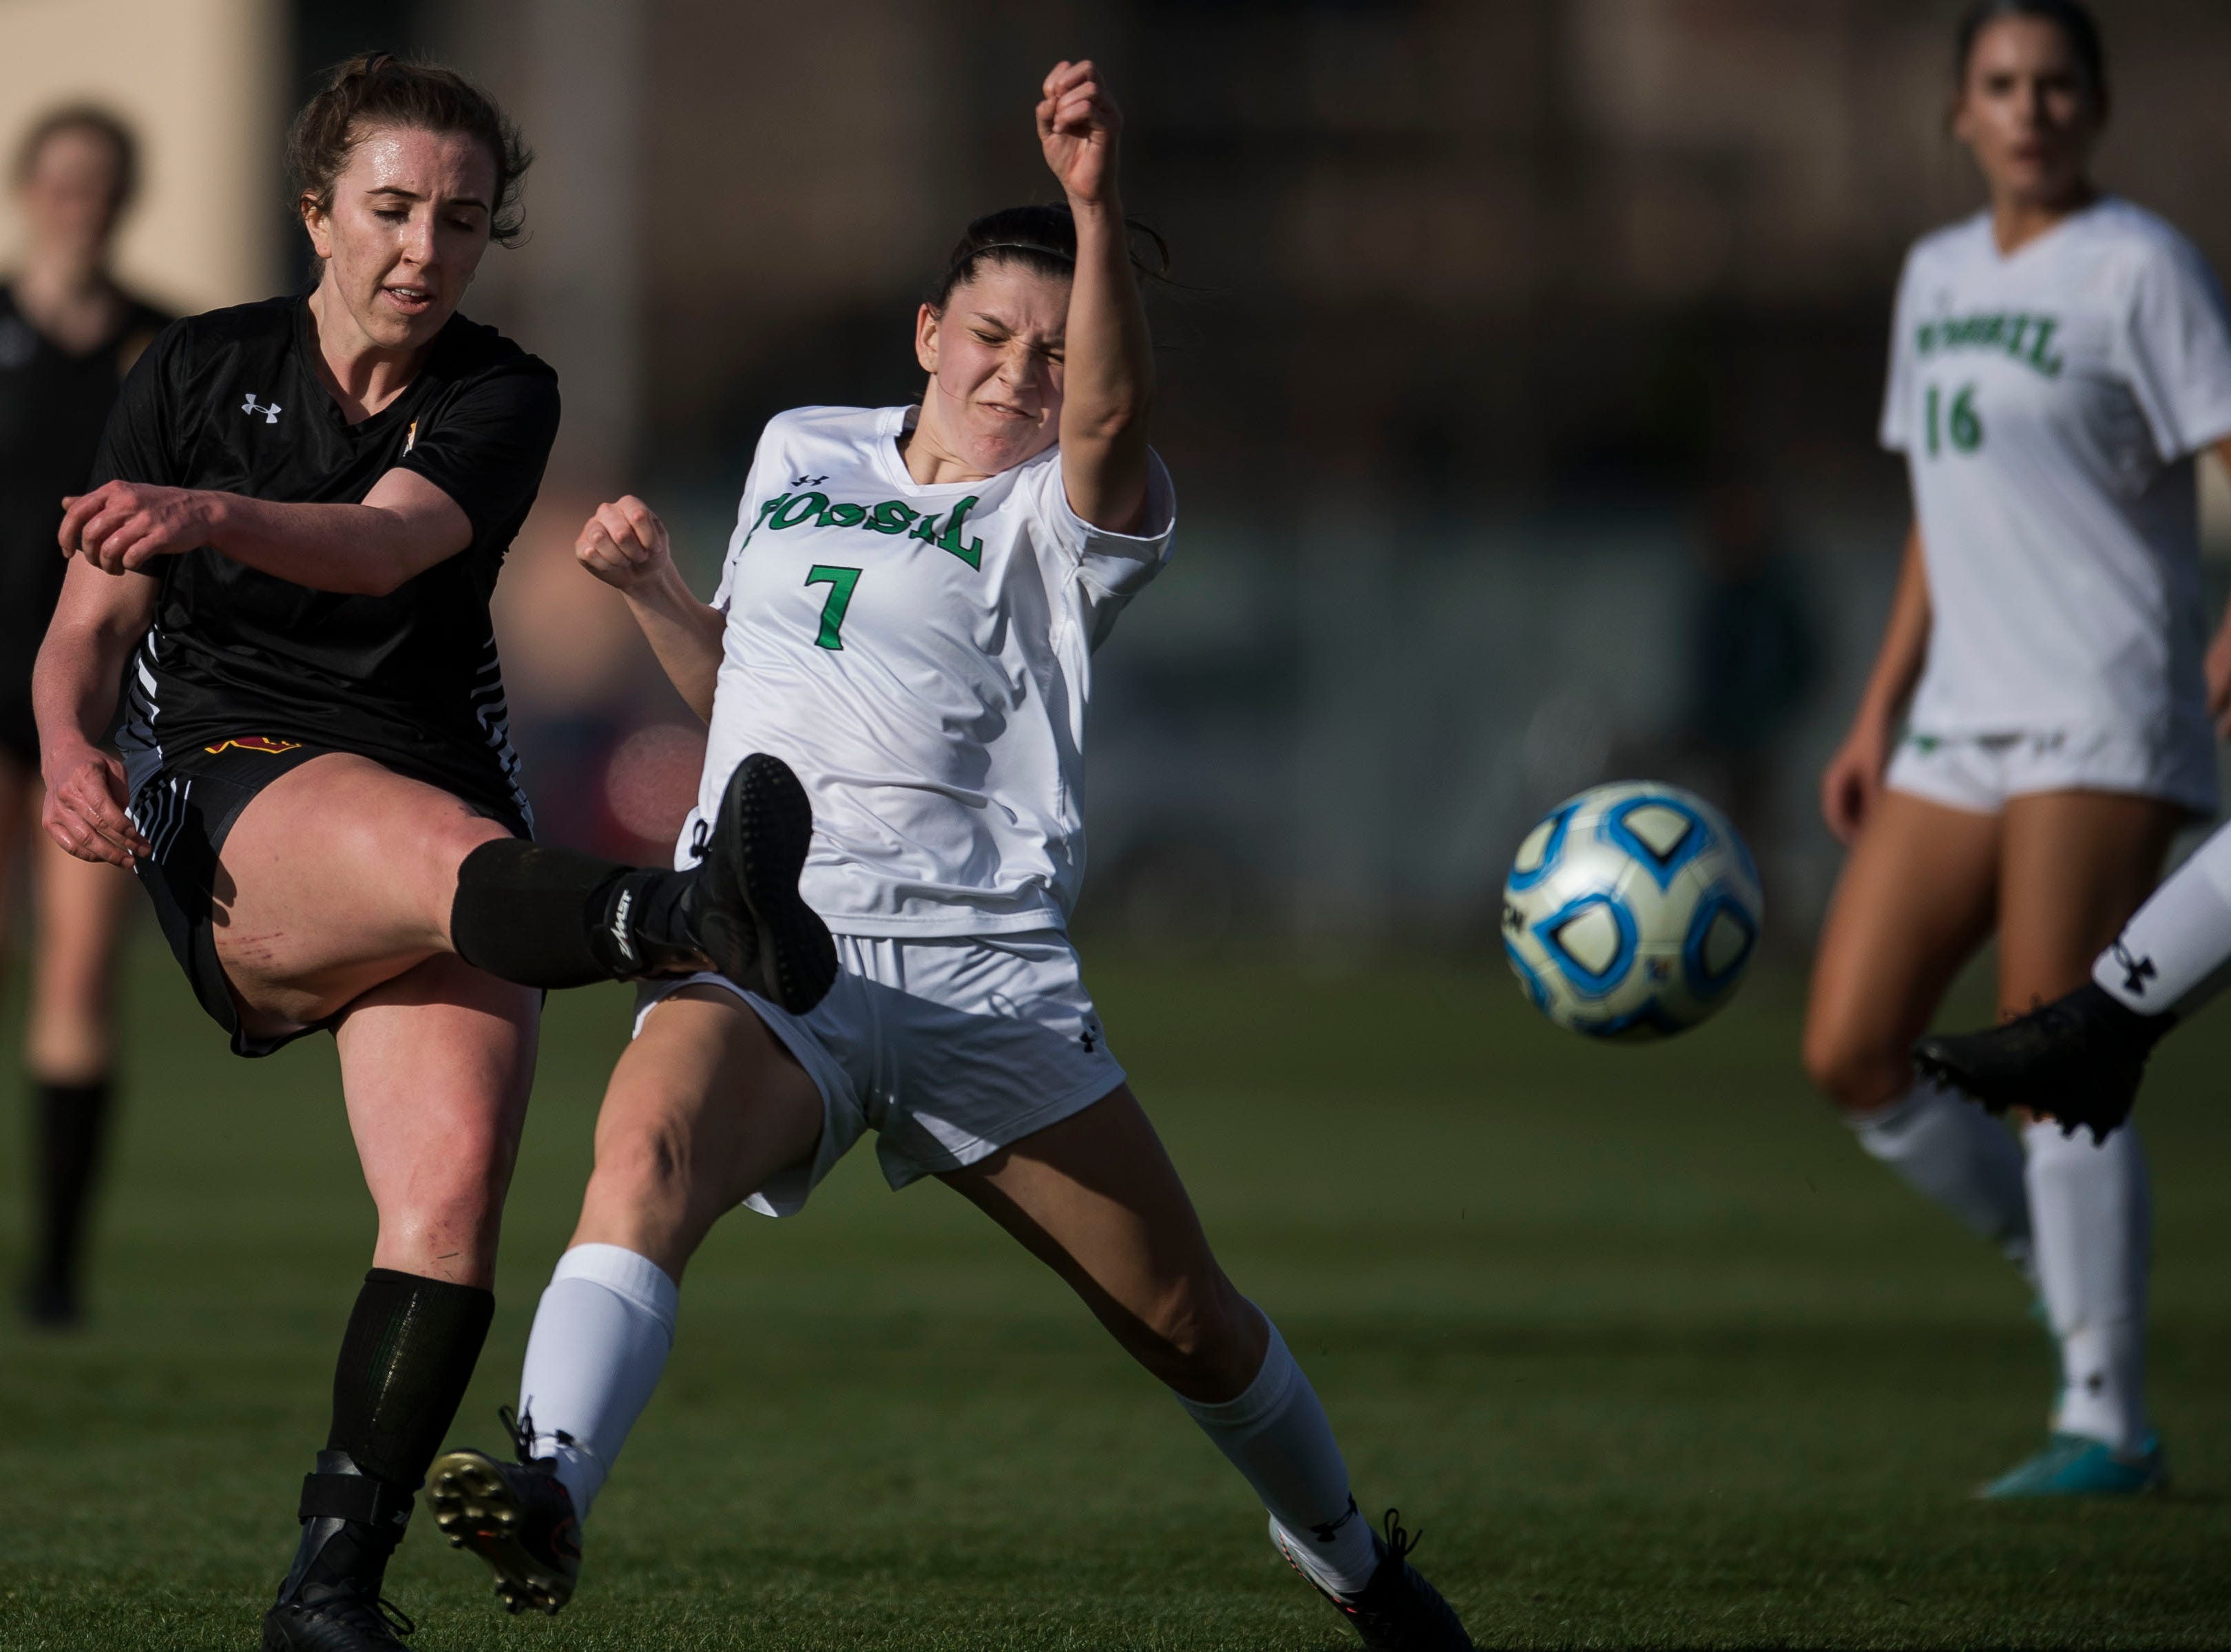 Rocky Mountain High School senior Mikayla Eccher (18) gets a shot past Fossil Ridge High School junior Riley Varoz (7) on Friday, April 4, 2019, at Colorado State University's soccer field in Fort Collins, Colo.